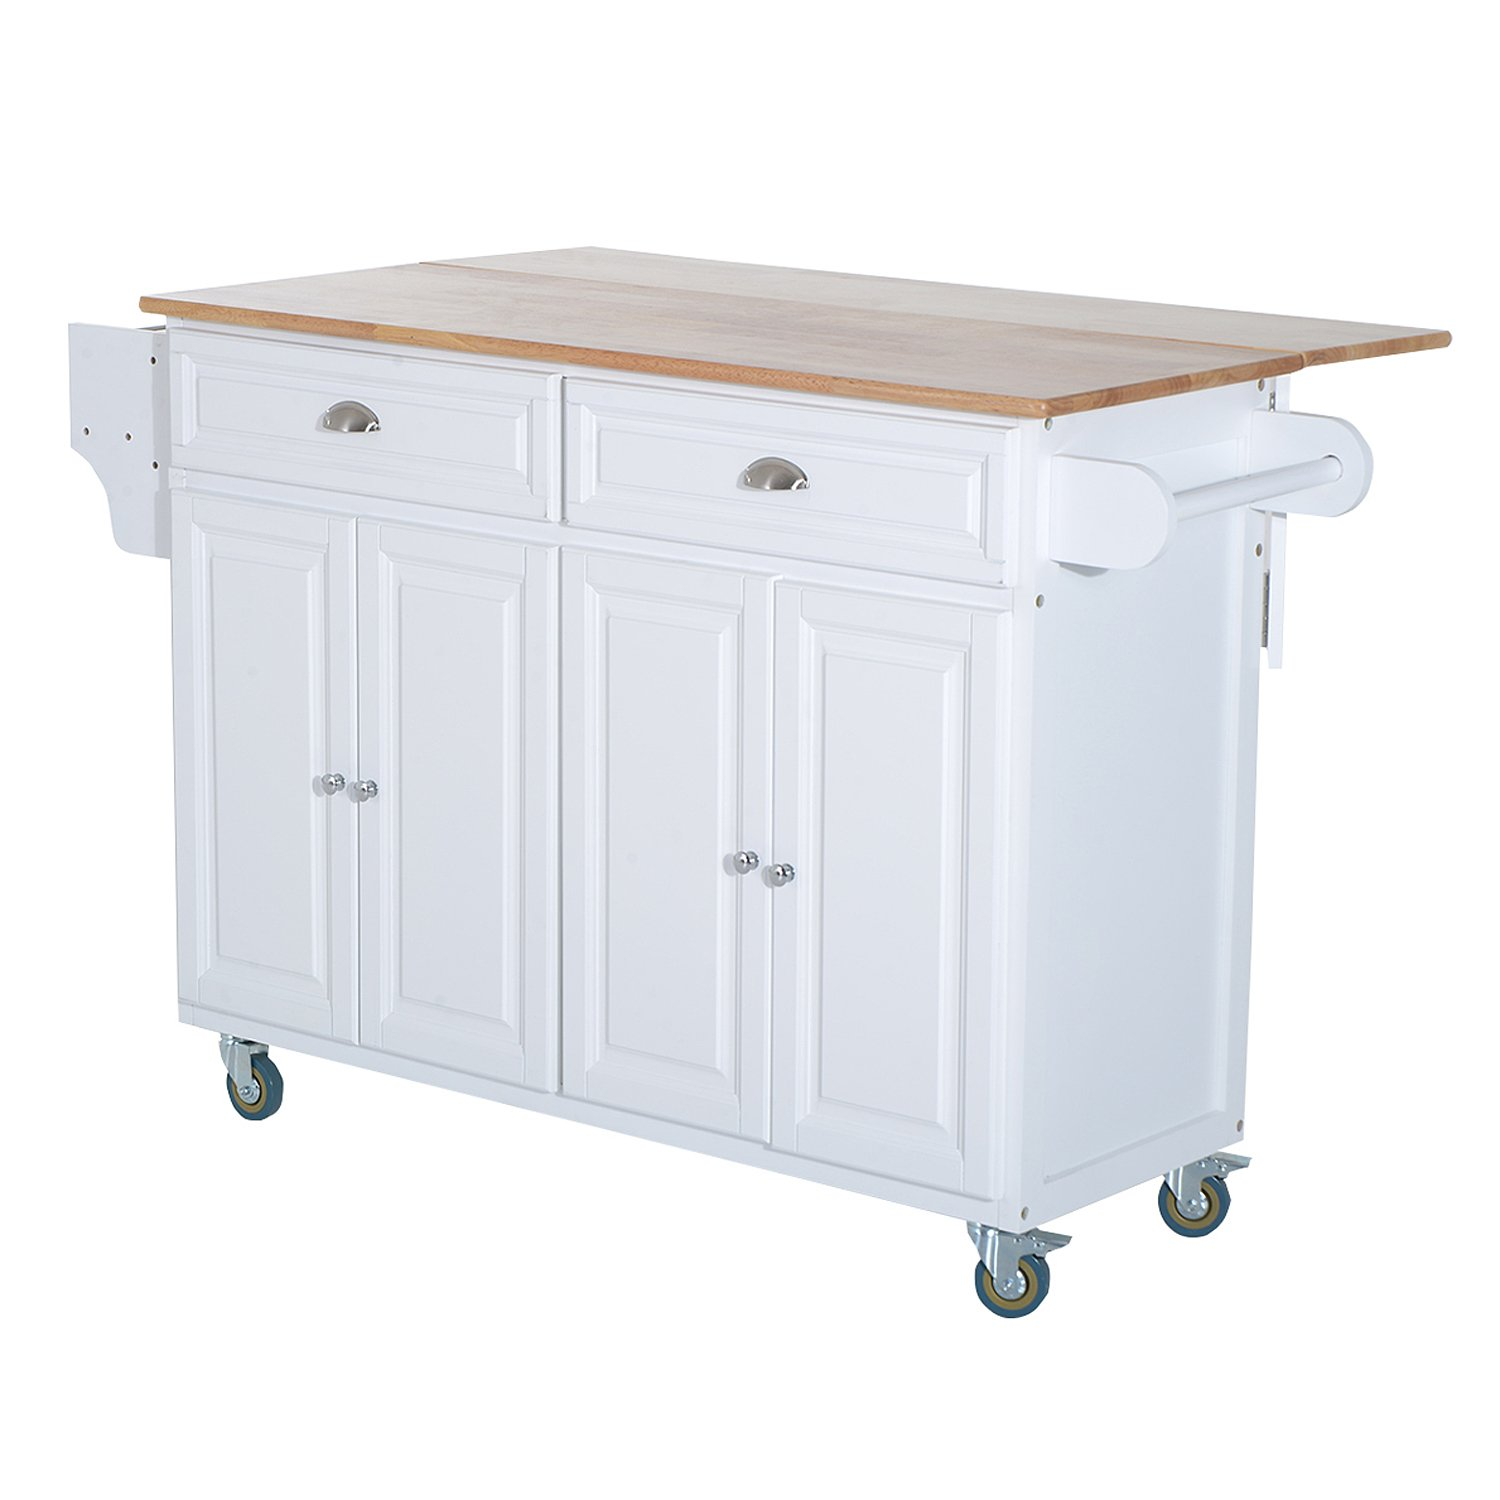 HOMCOM Wood Top Drop-Leaf Rolling Kitchen Island Table Cart on Wheels, White